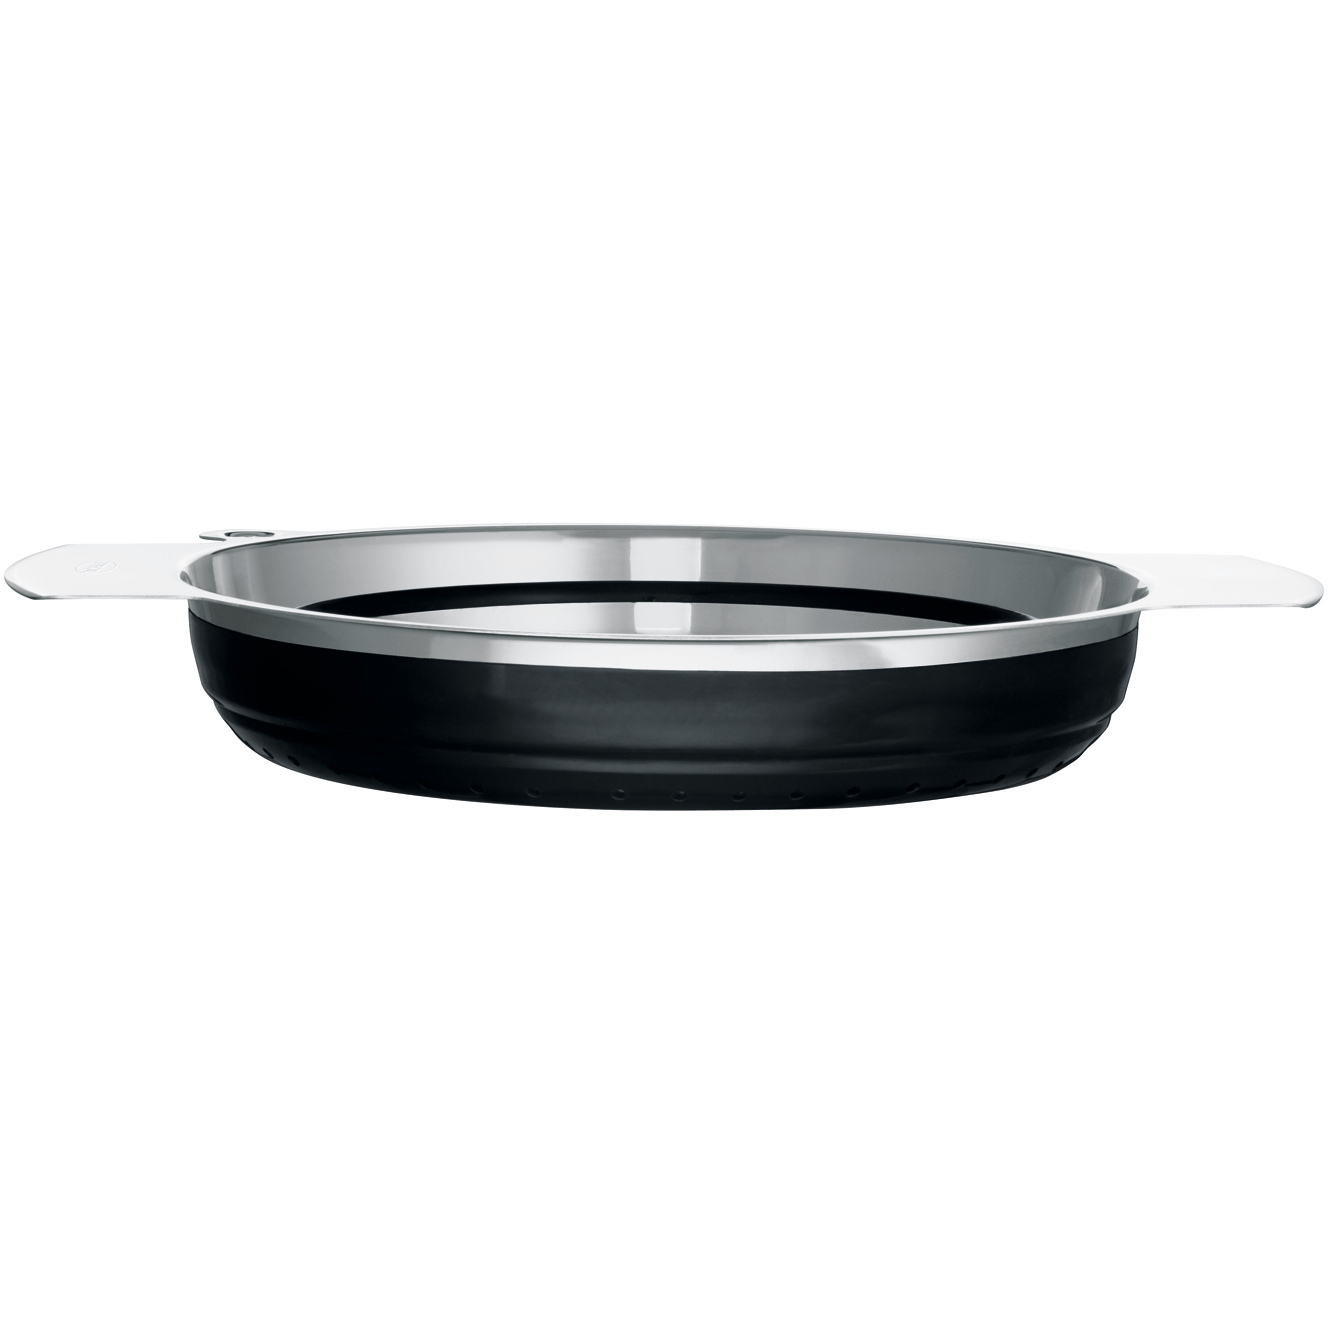 Rosle Black Silicone Collapsible Colander, 8 Inch